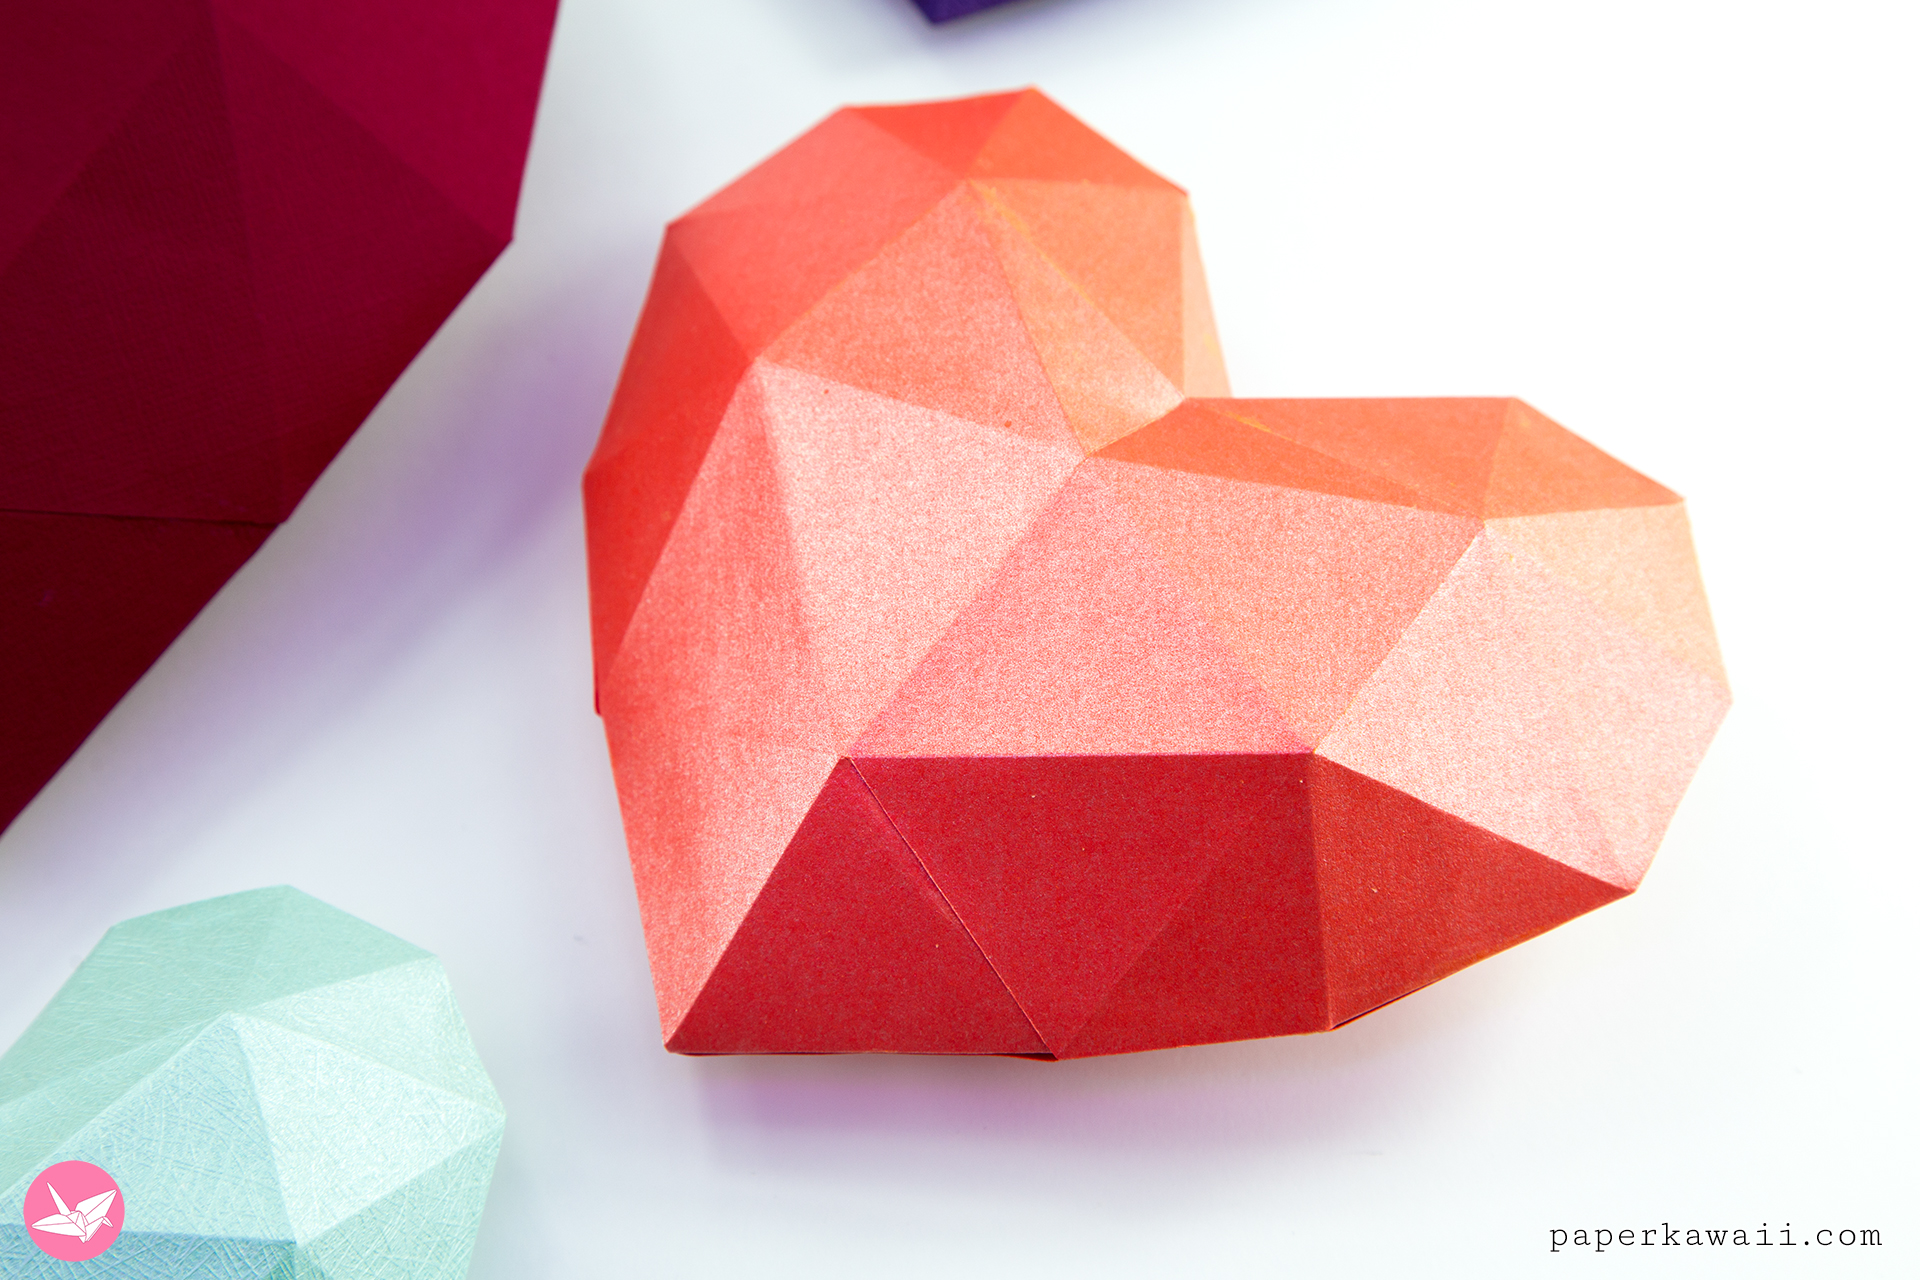 Origami Opening Heart Box / Envelope Tutorial - Design: Francis Ow ... | 1280x1920